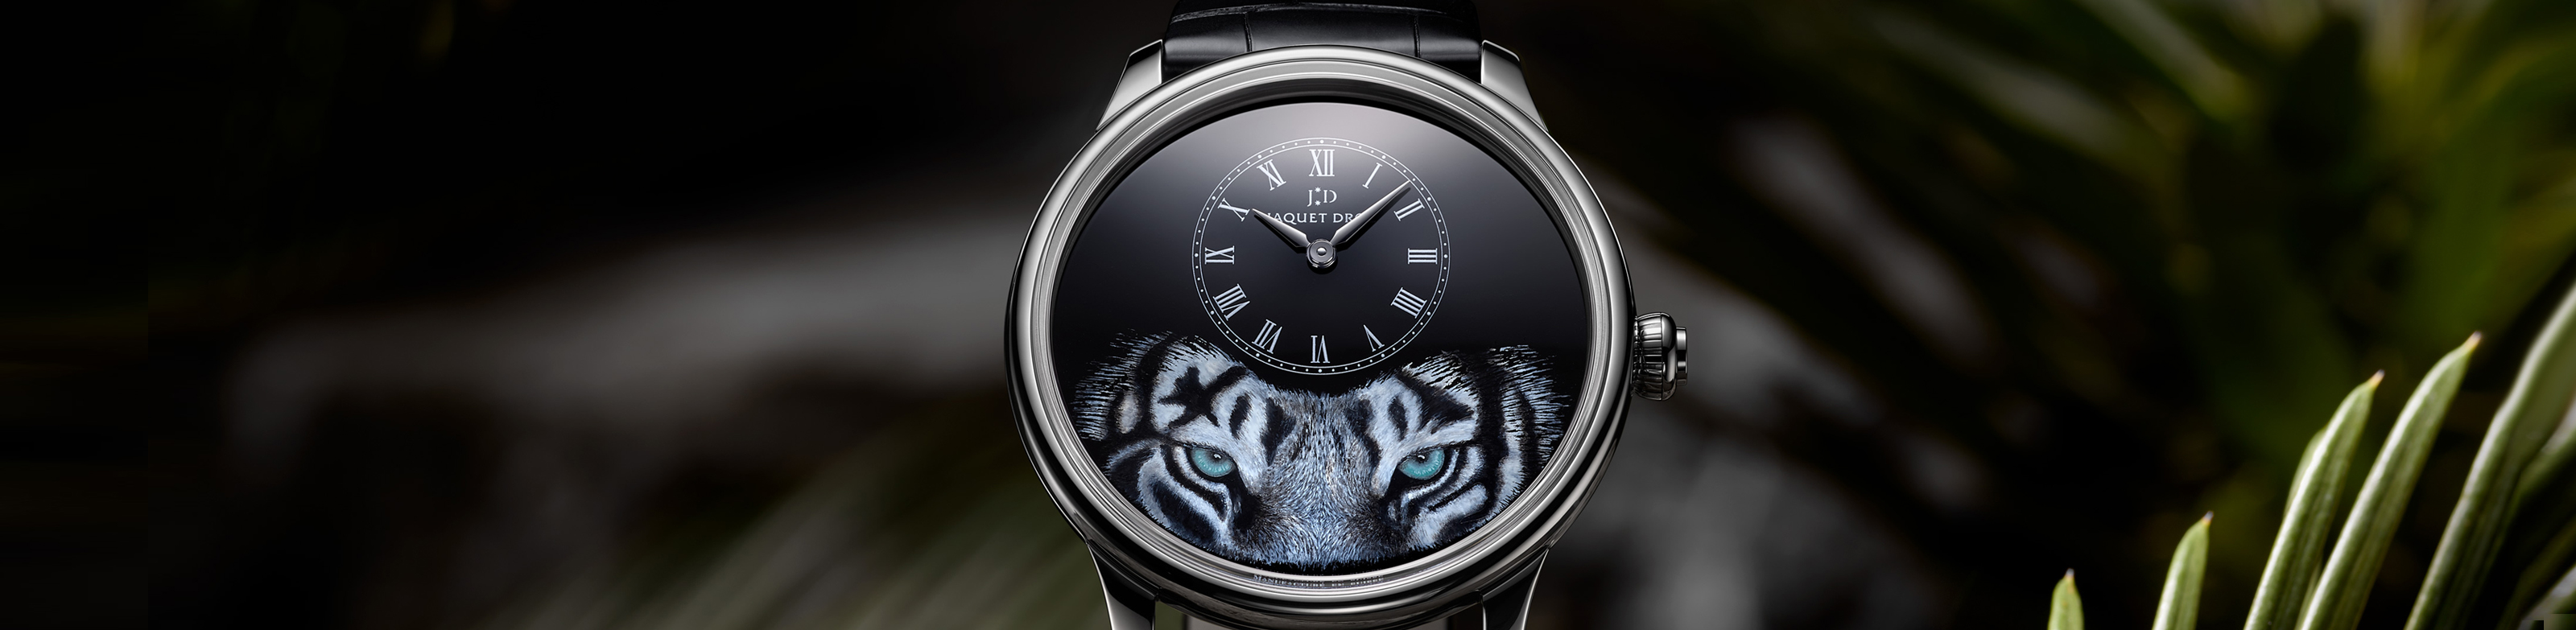 JAQUET DROZ - JULY 2020 NEWS article hero image